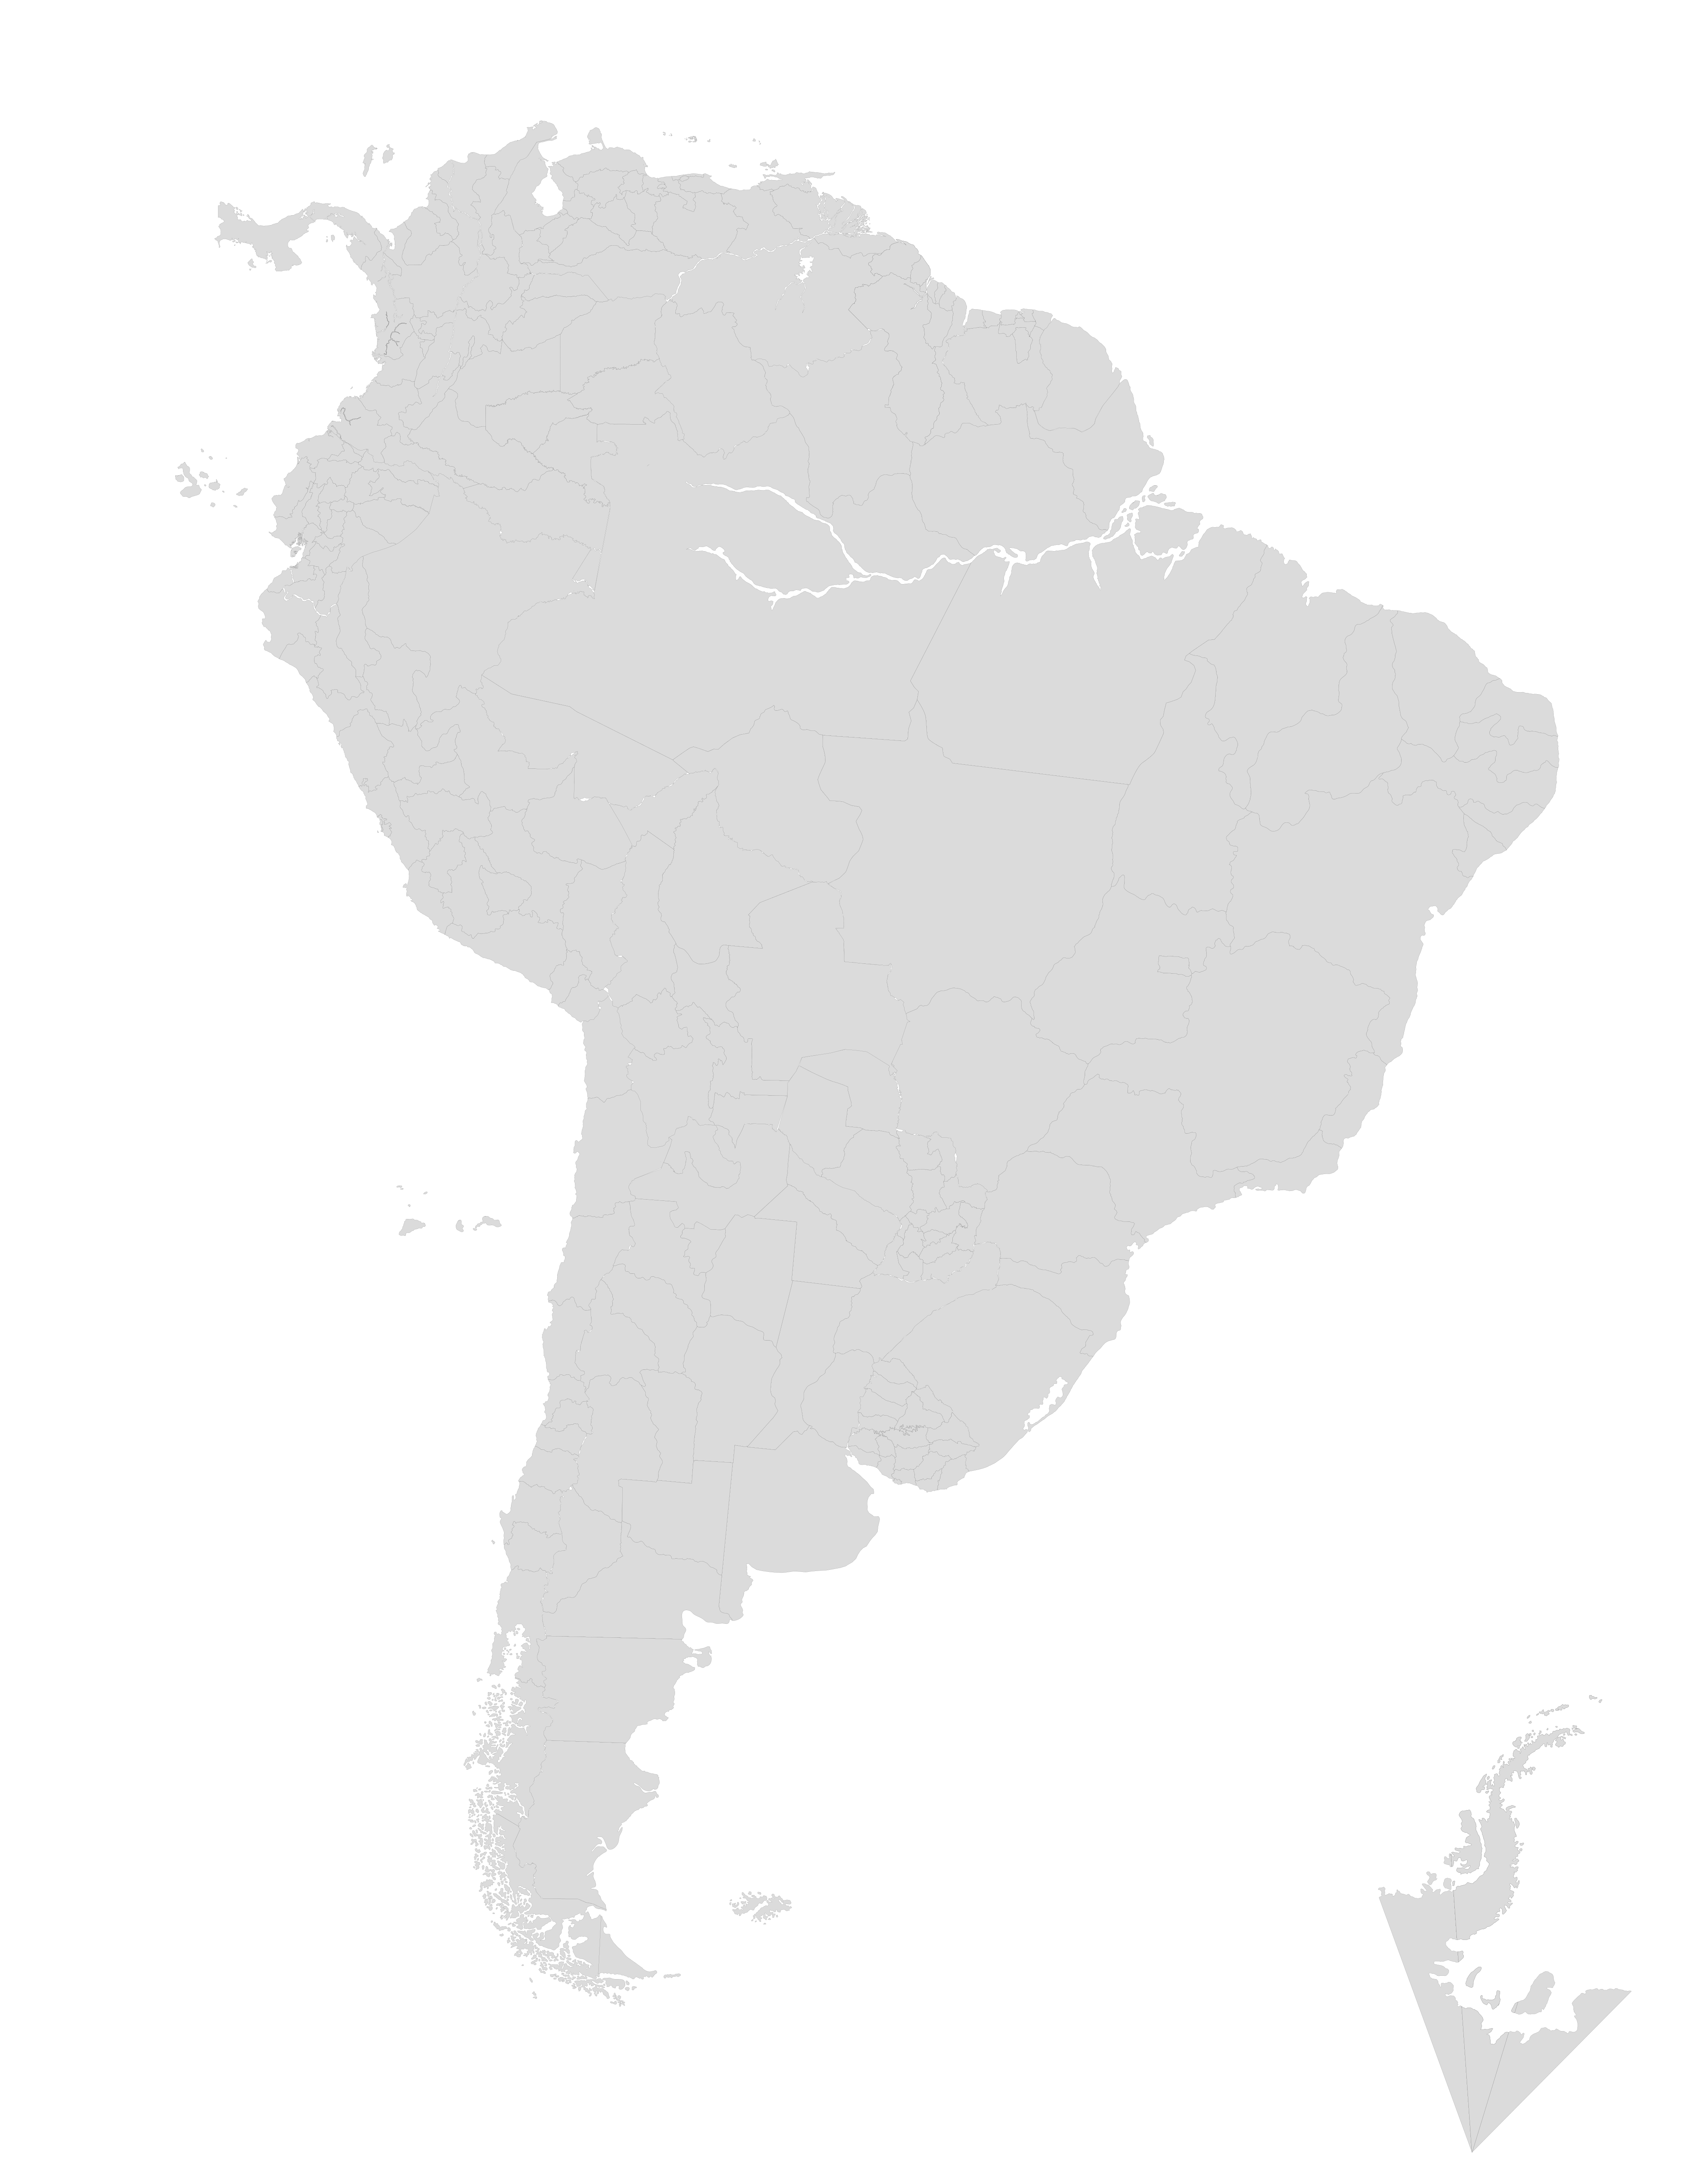 Picture of: Blank Map Of South America Png Free Blank Map Of South America Png Transparent Images 113879 Pngio